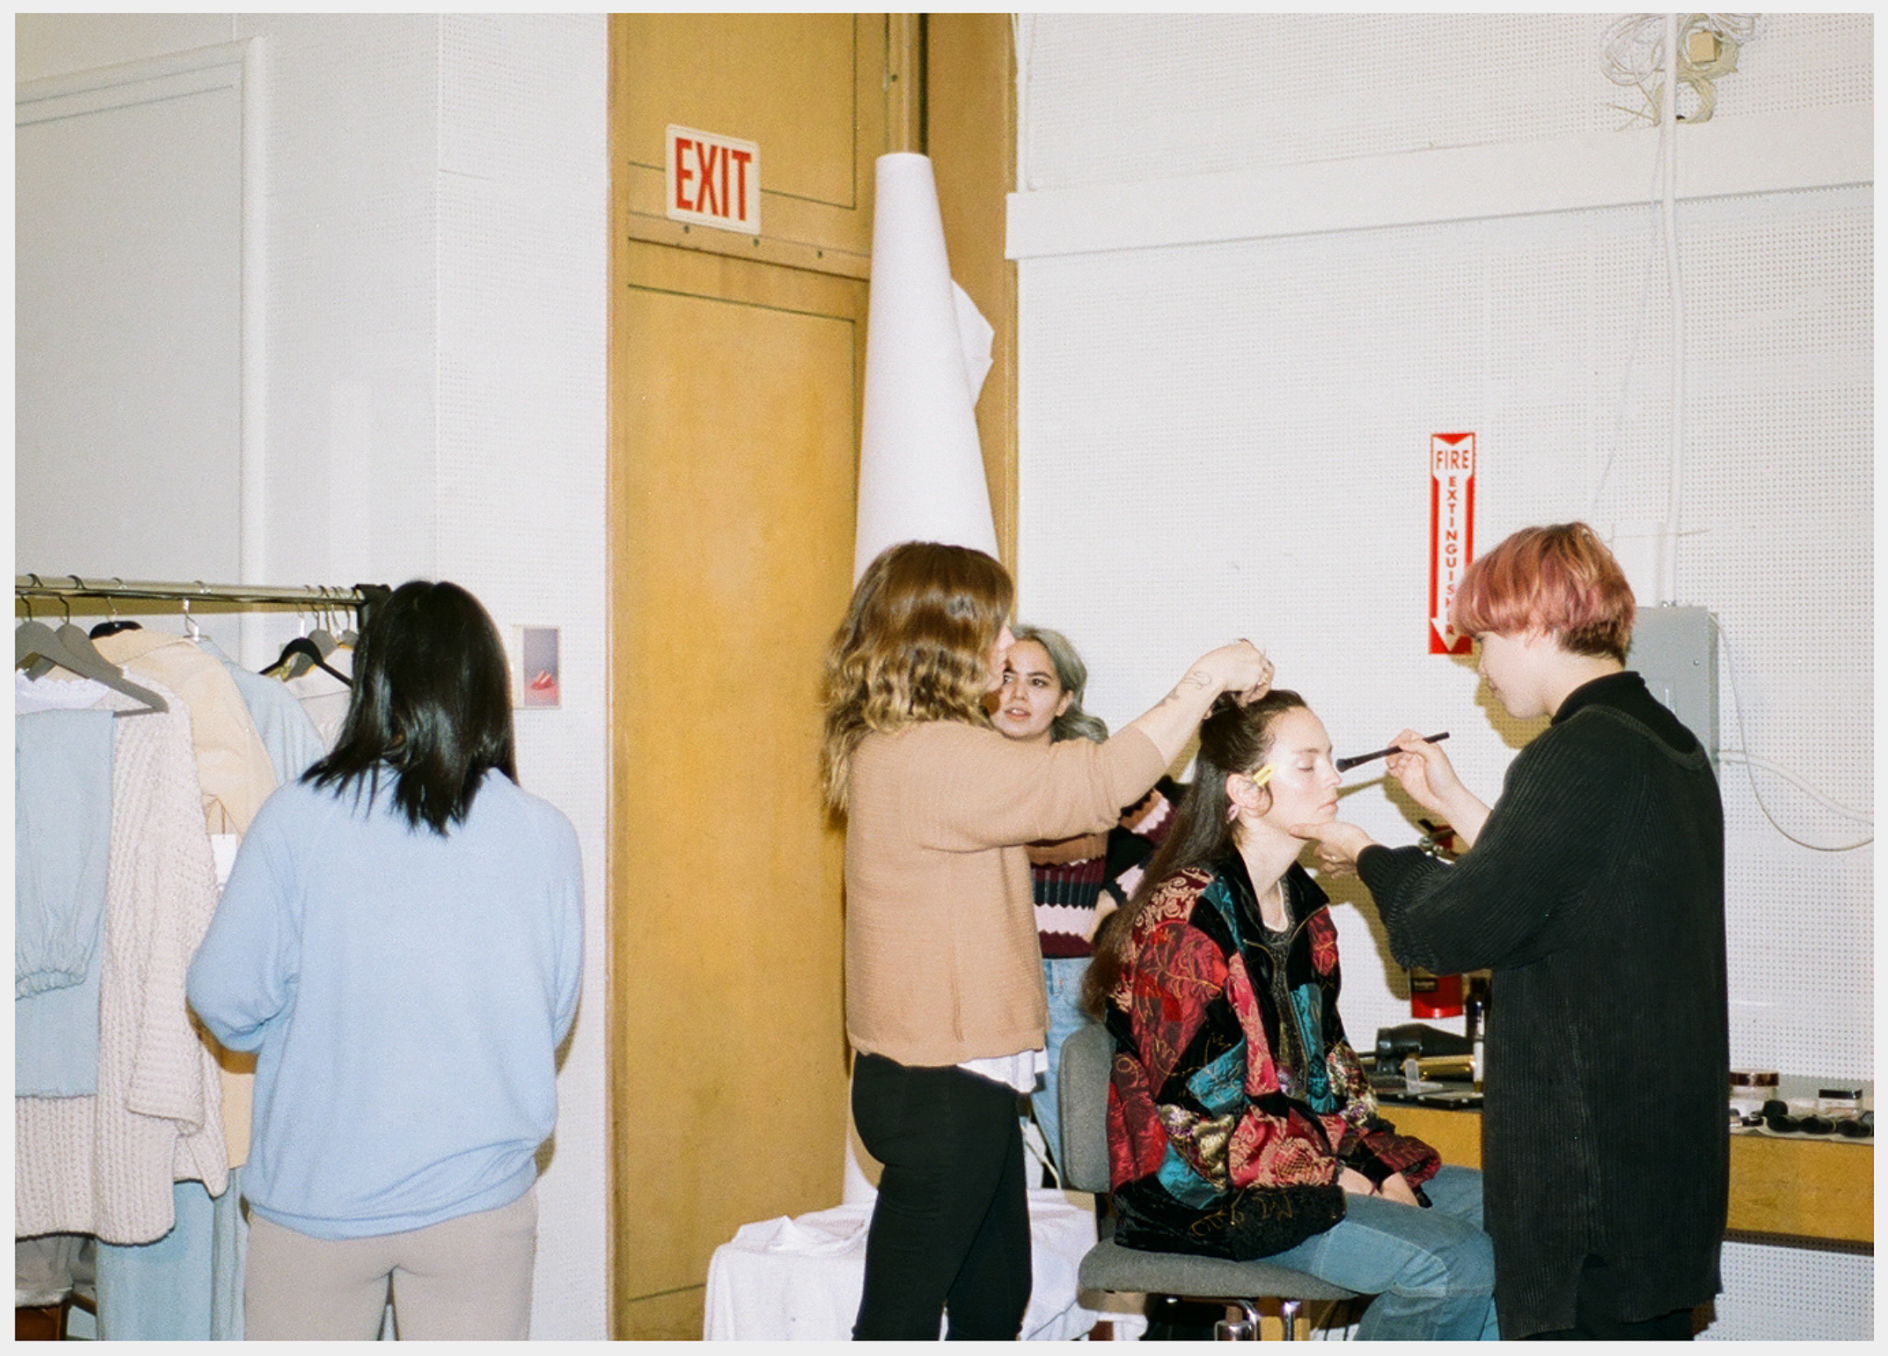 Behind the Scenes-Making a fashion editorial  February 9, 2017   https://vsco.co/style/journal/behind-the-scenes